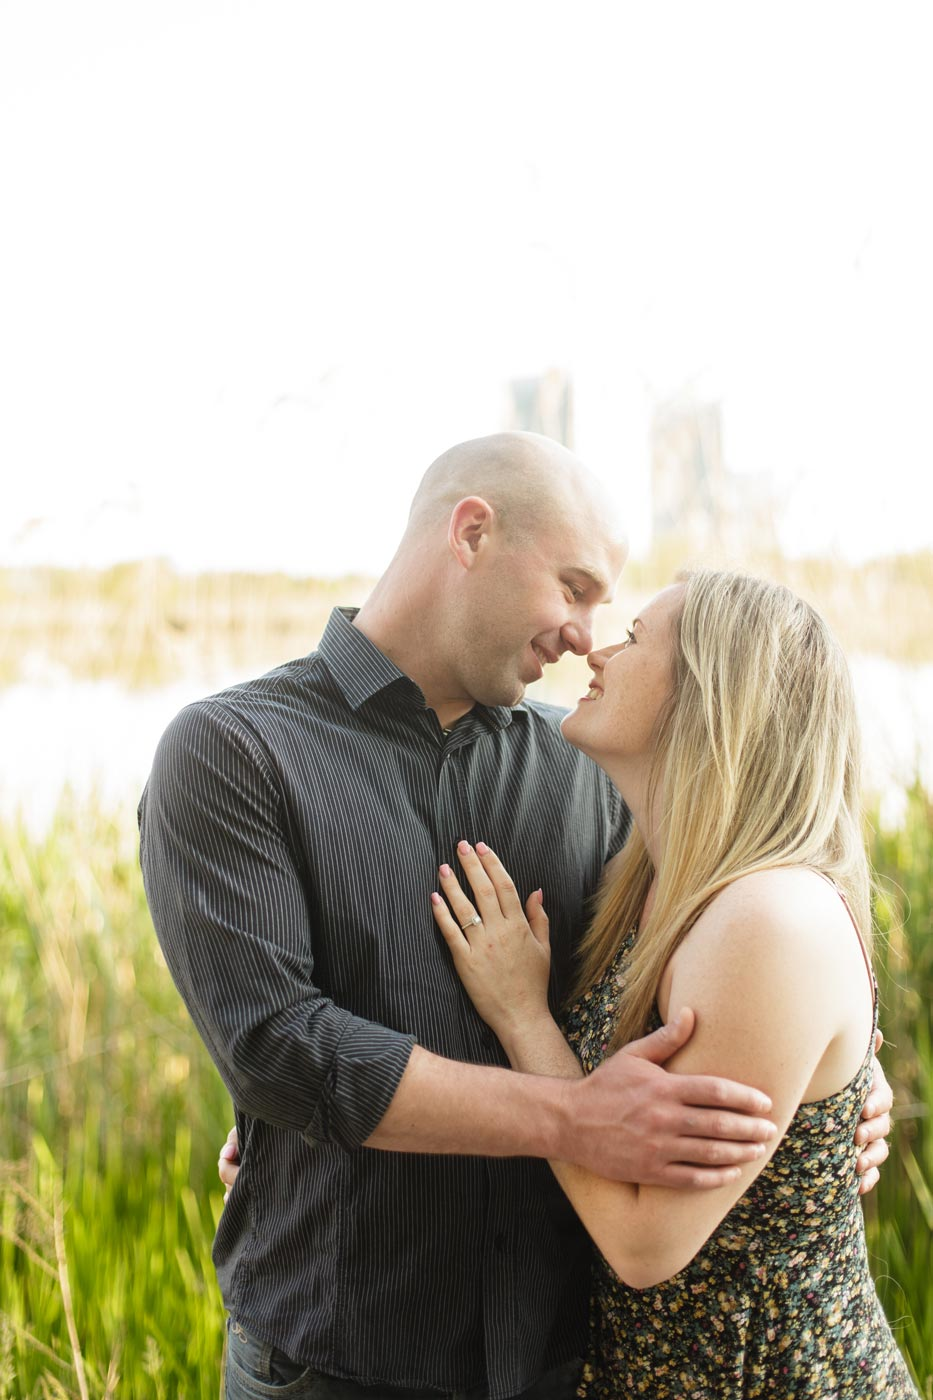 Brenna and Chris – A Relaxed High Park Engagement